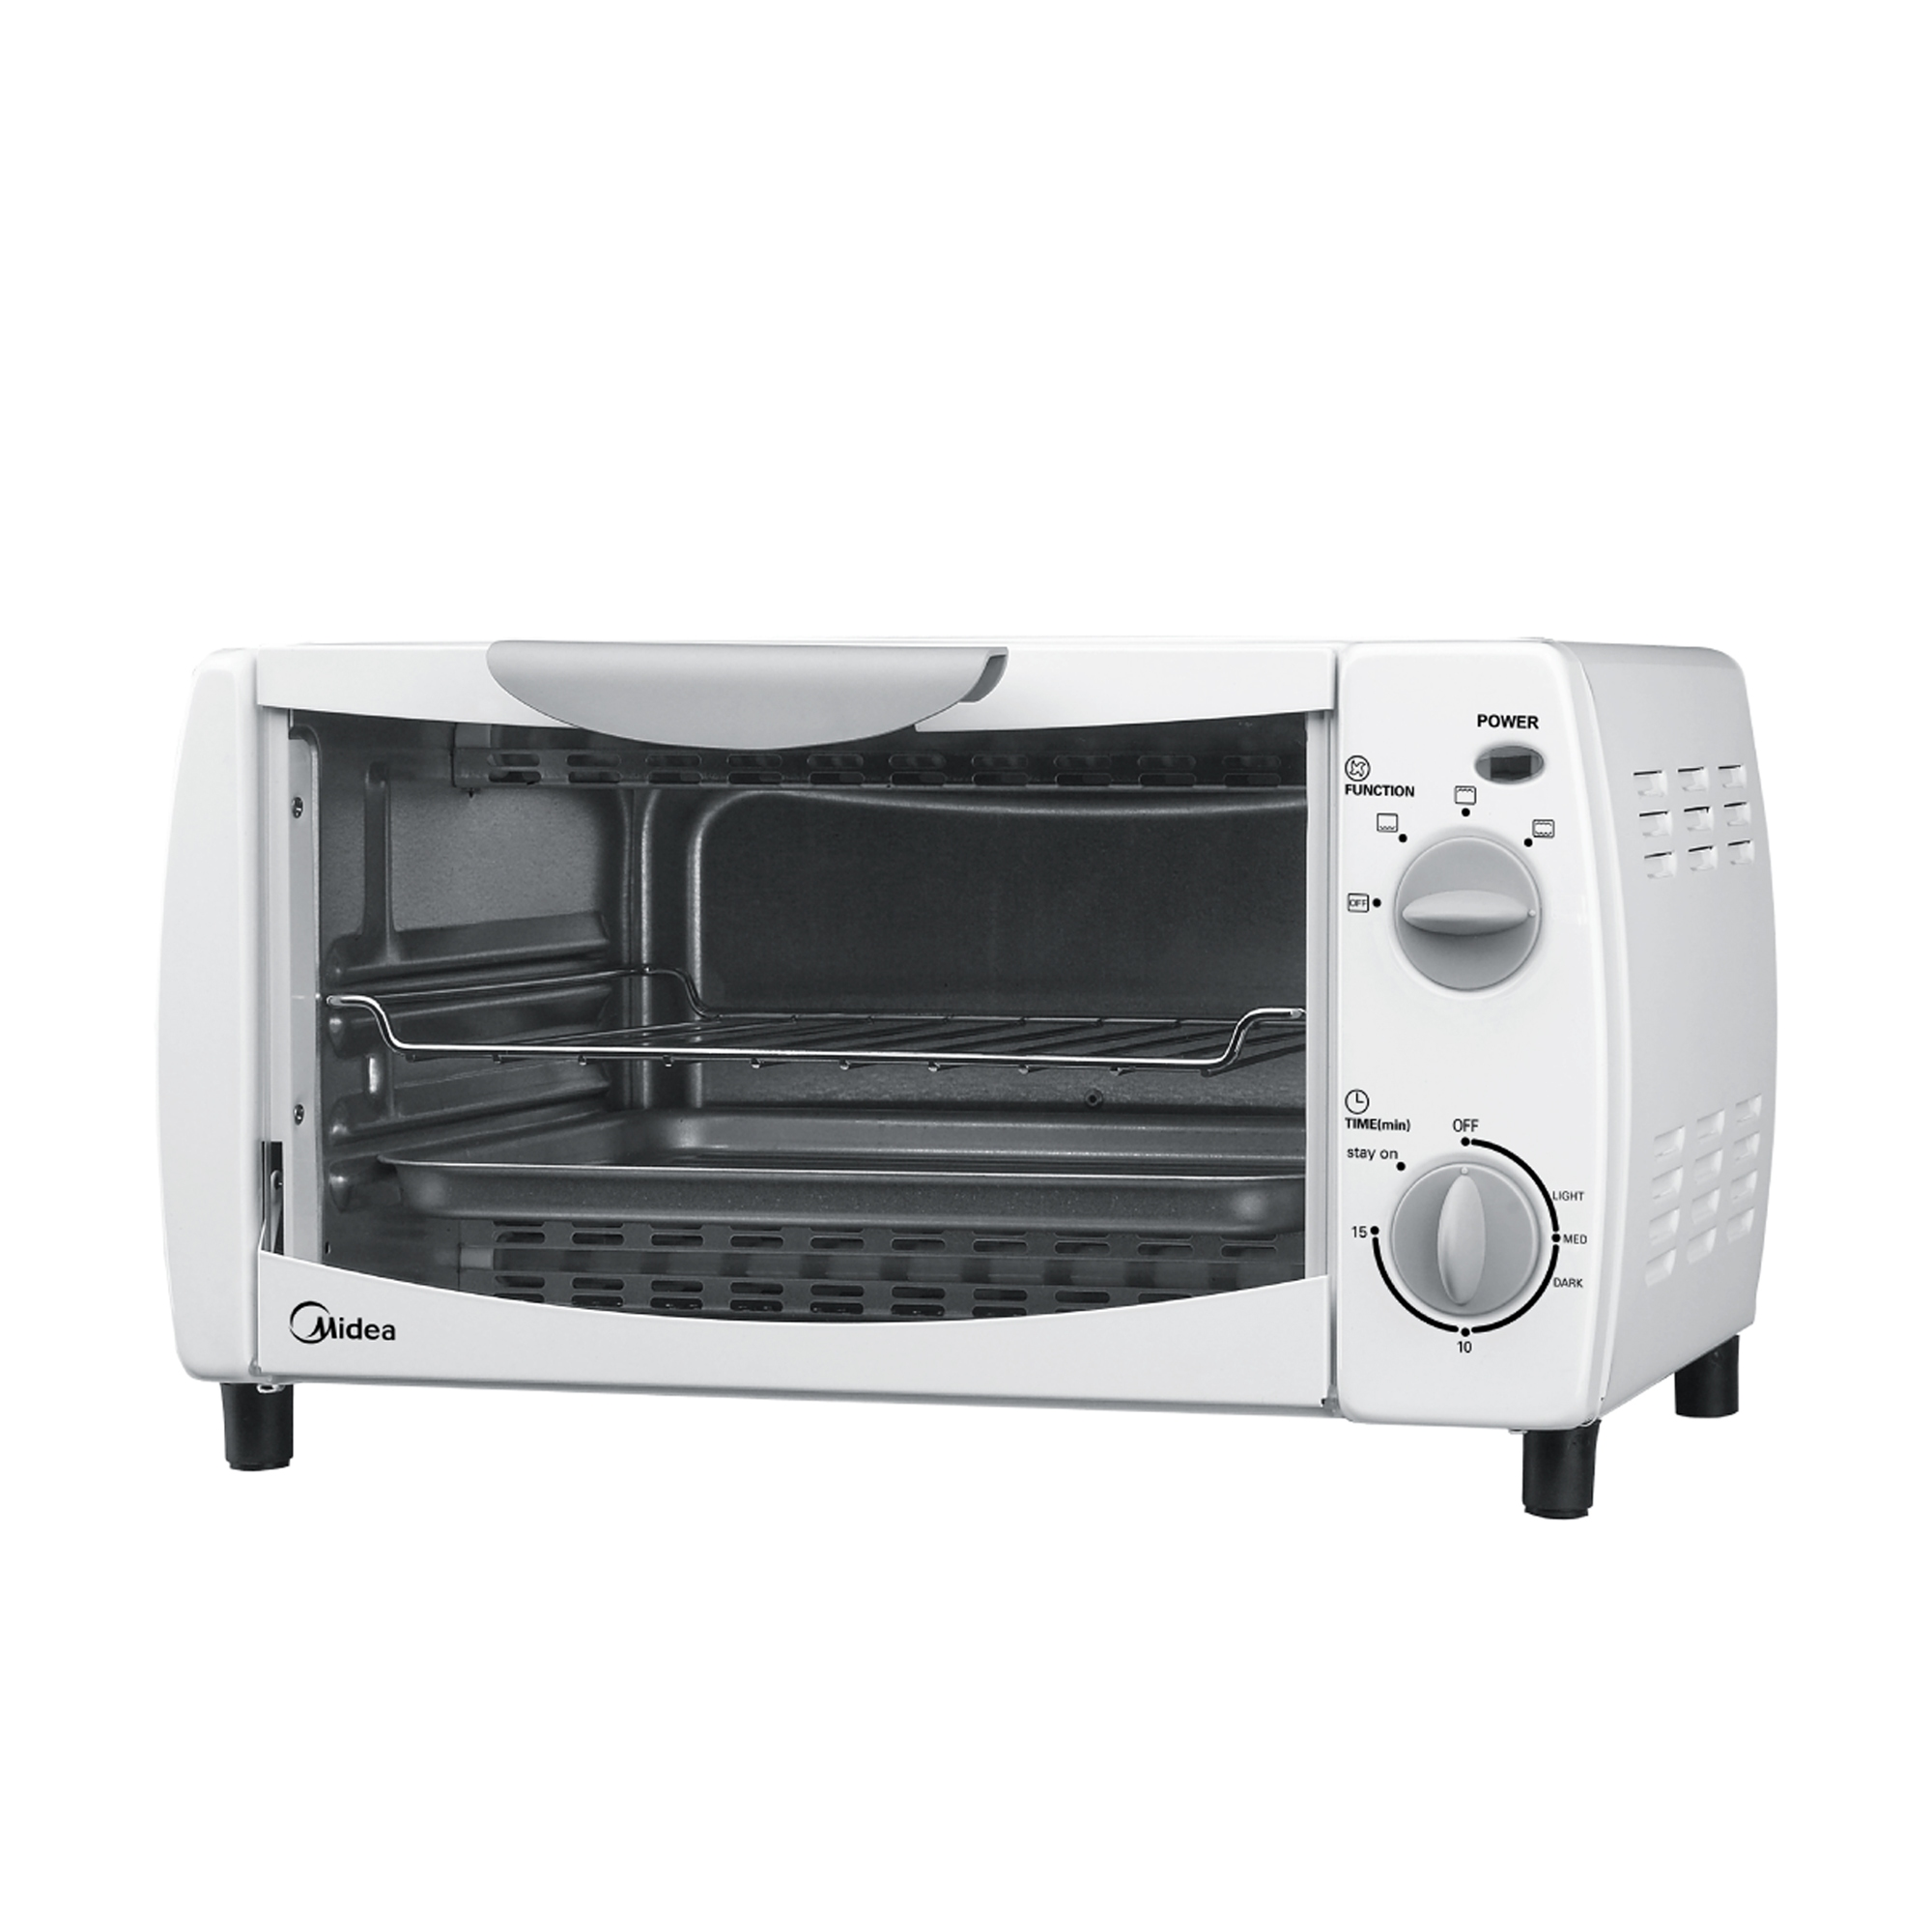 for oven end meo sale toaster pm i midea sjkelectrical htm